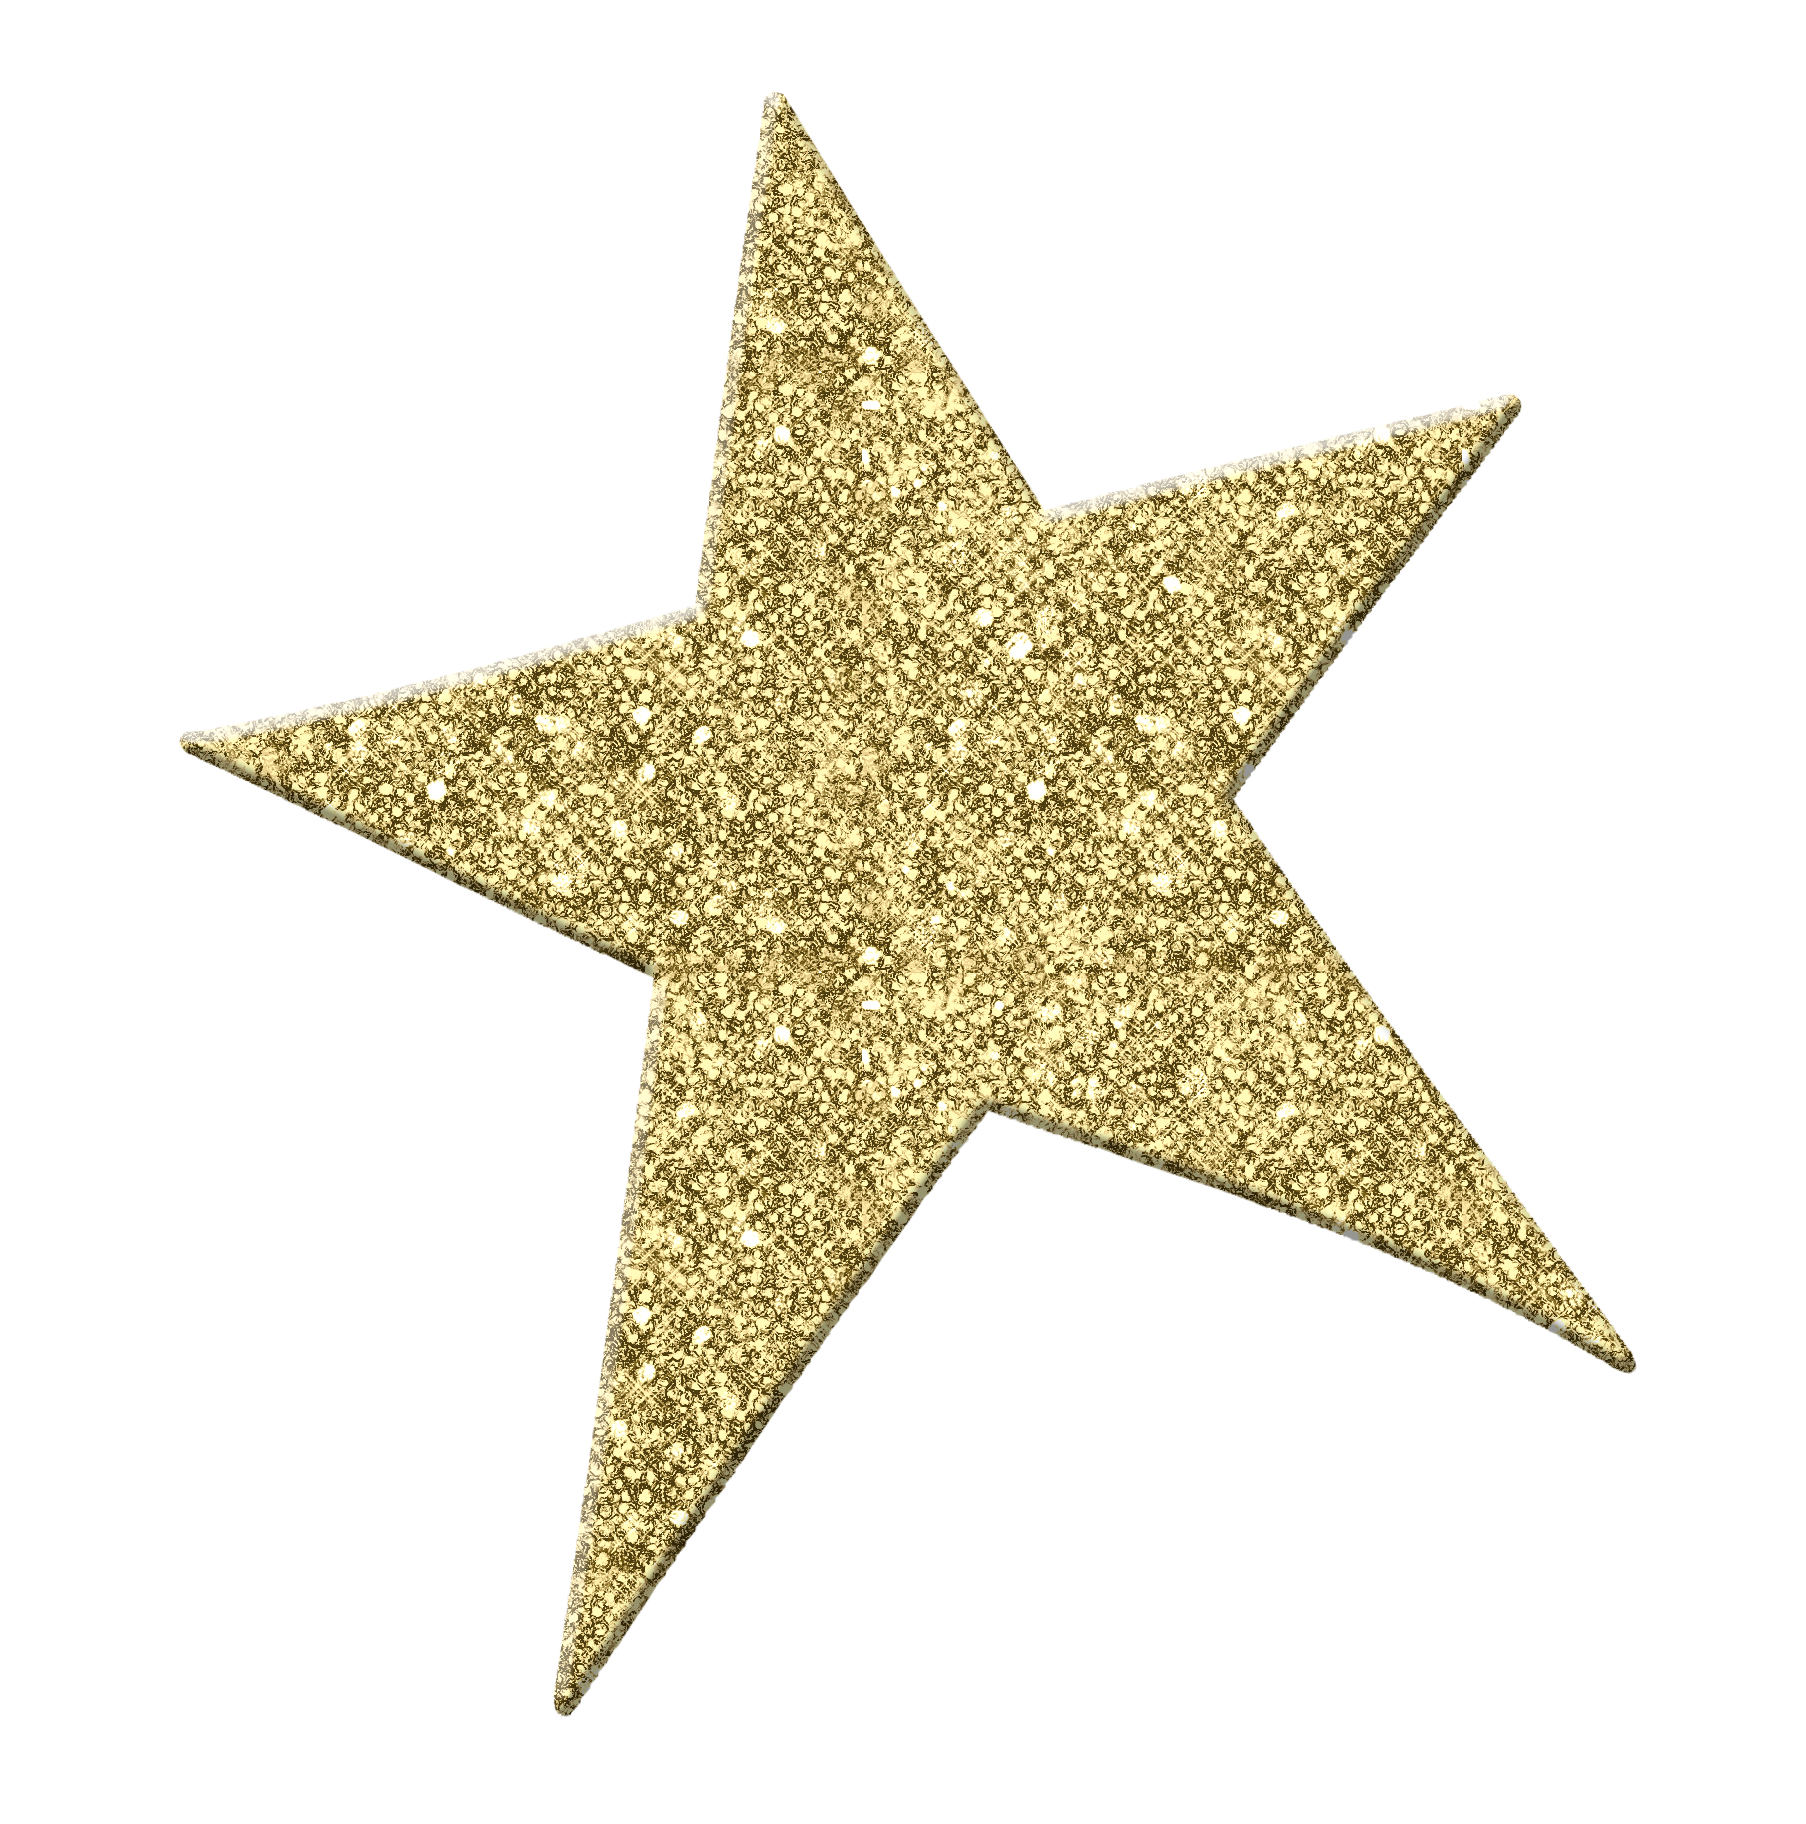 Free star cliparts download. Glitter clipart clear background